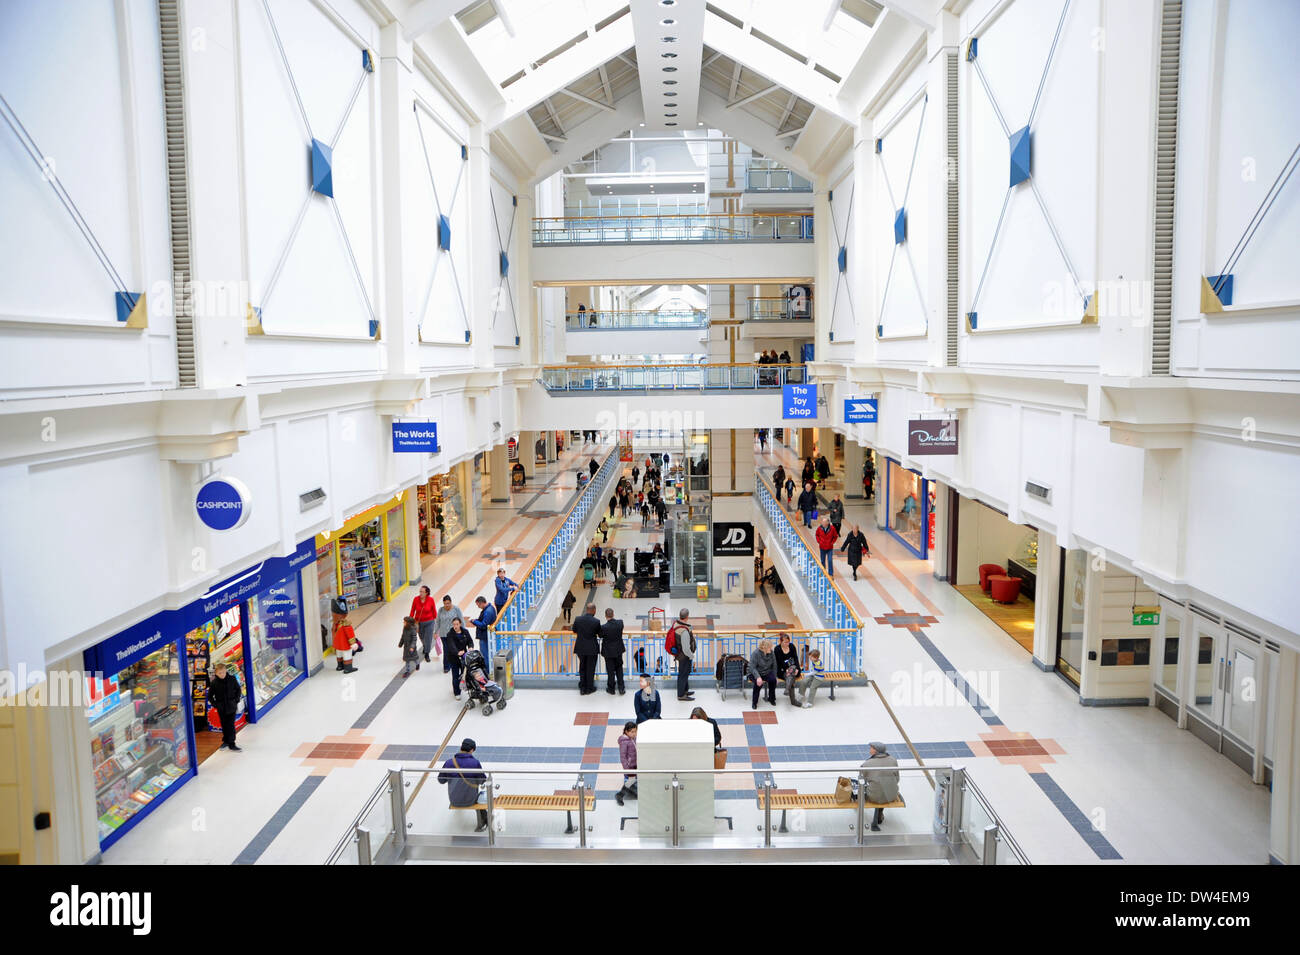 County Mall Shopping Centre Crawley UK - Stock Image